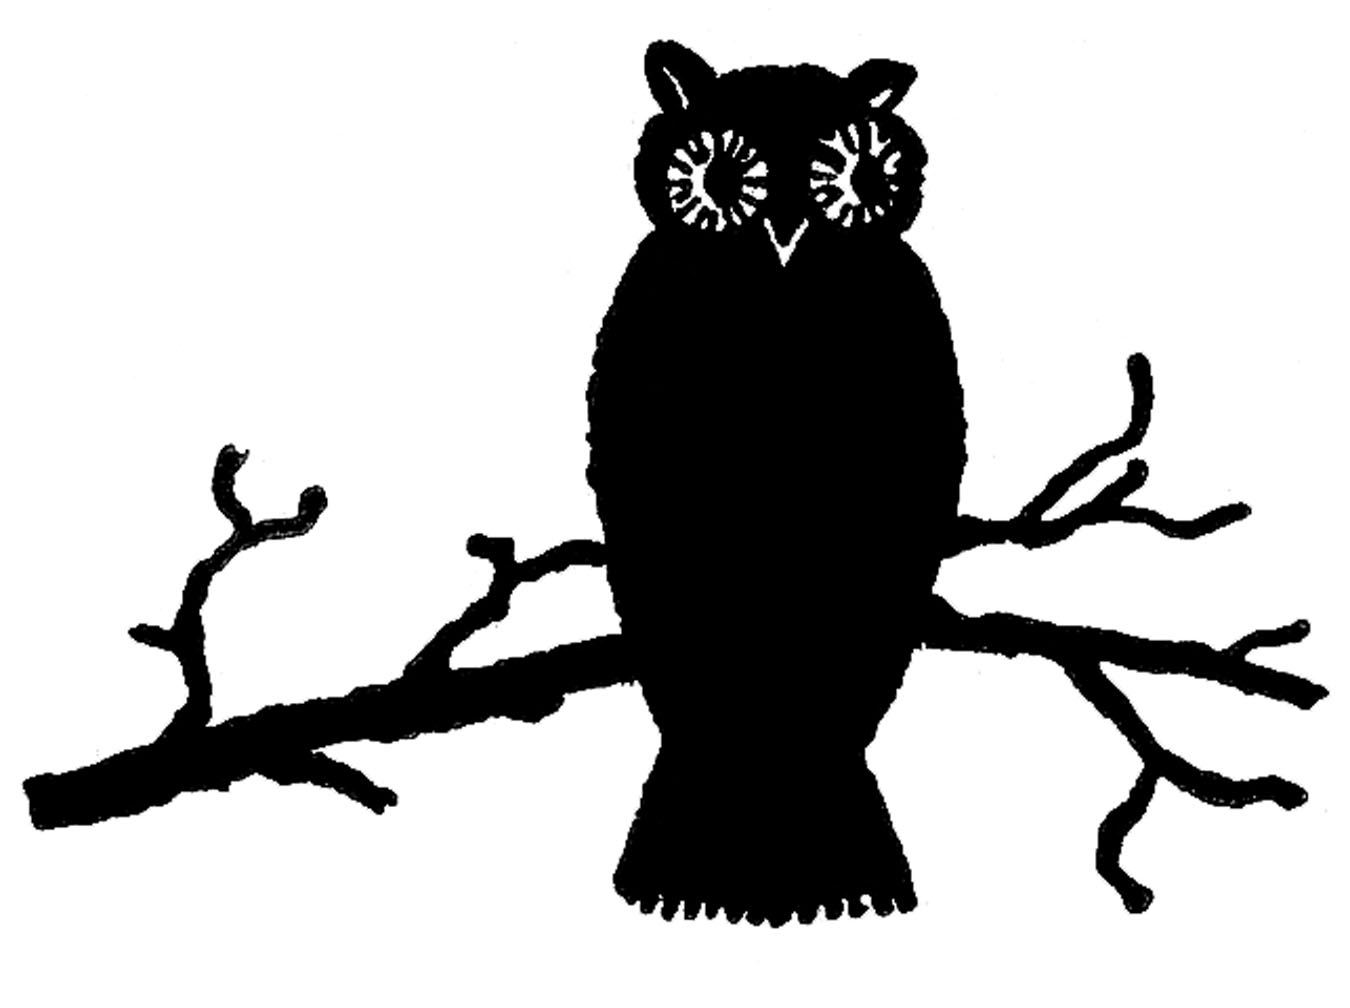 Cuteowl clipart black and white on a branch png black and white stock Free Owl Silhouette Cliparts, Download Free Clip Art, Free Clip Art ... png black and white stock